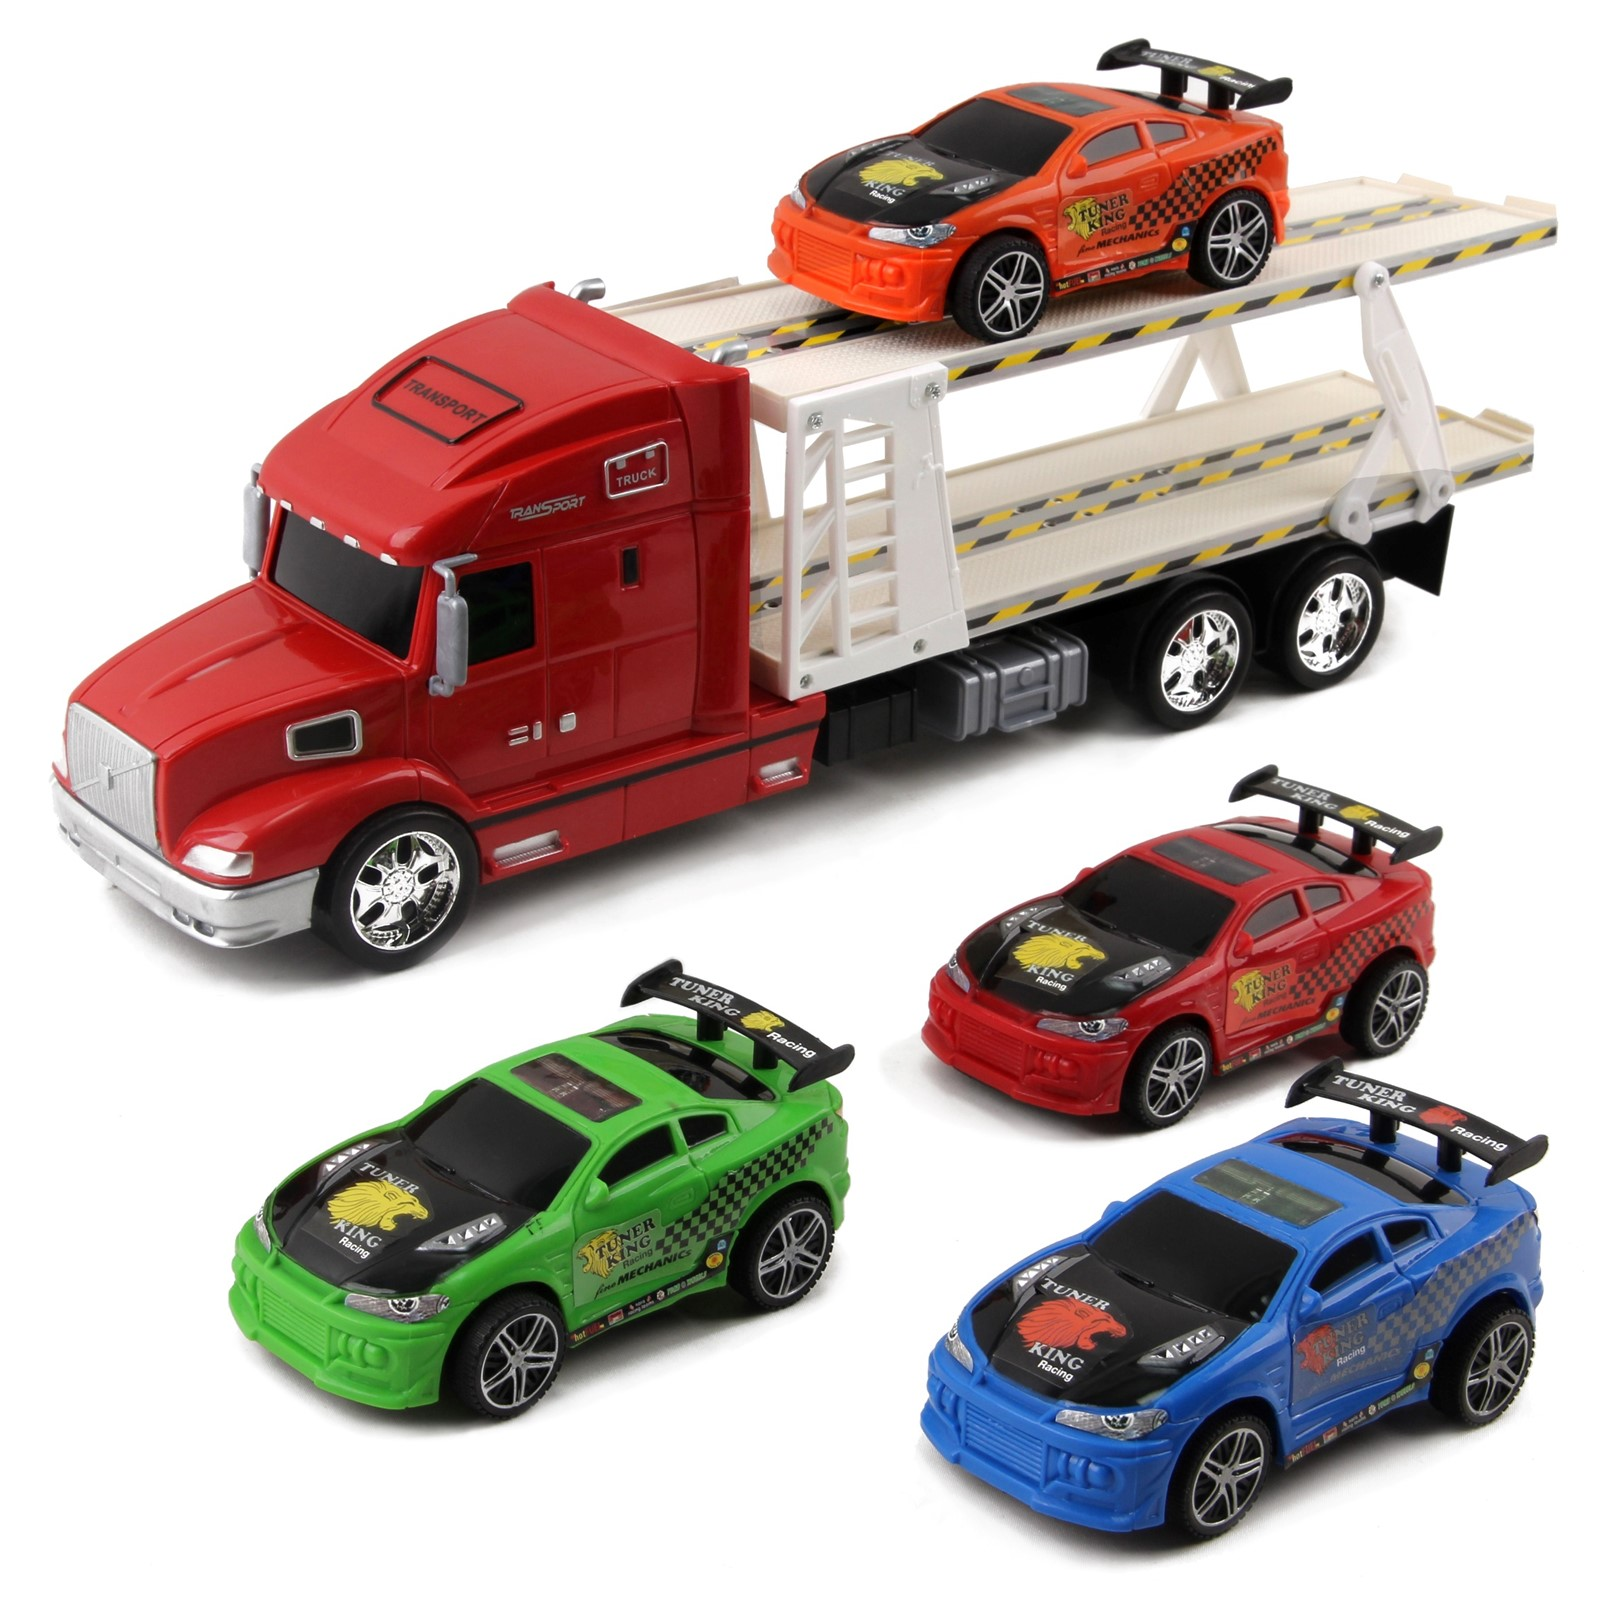 Friction Powered Toy Semi Truck Trailer Kids Push And Go Big Rig Carrier Includes Four Race Cars 1:20 Scale Auto Transporter Vehicle Perfect Pretend Play Imagination Gift For Children